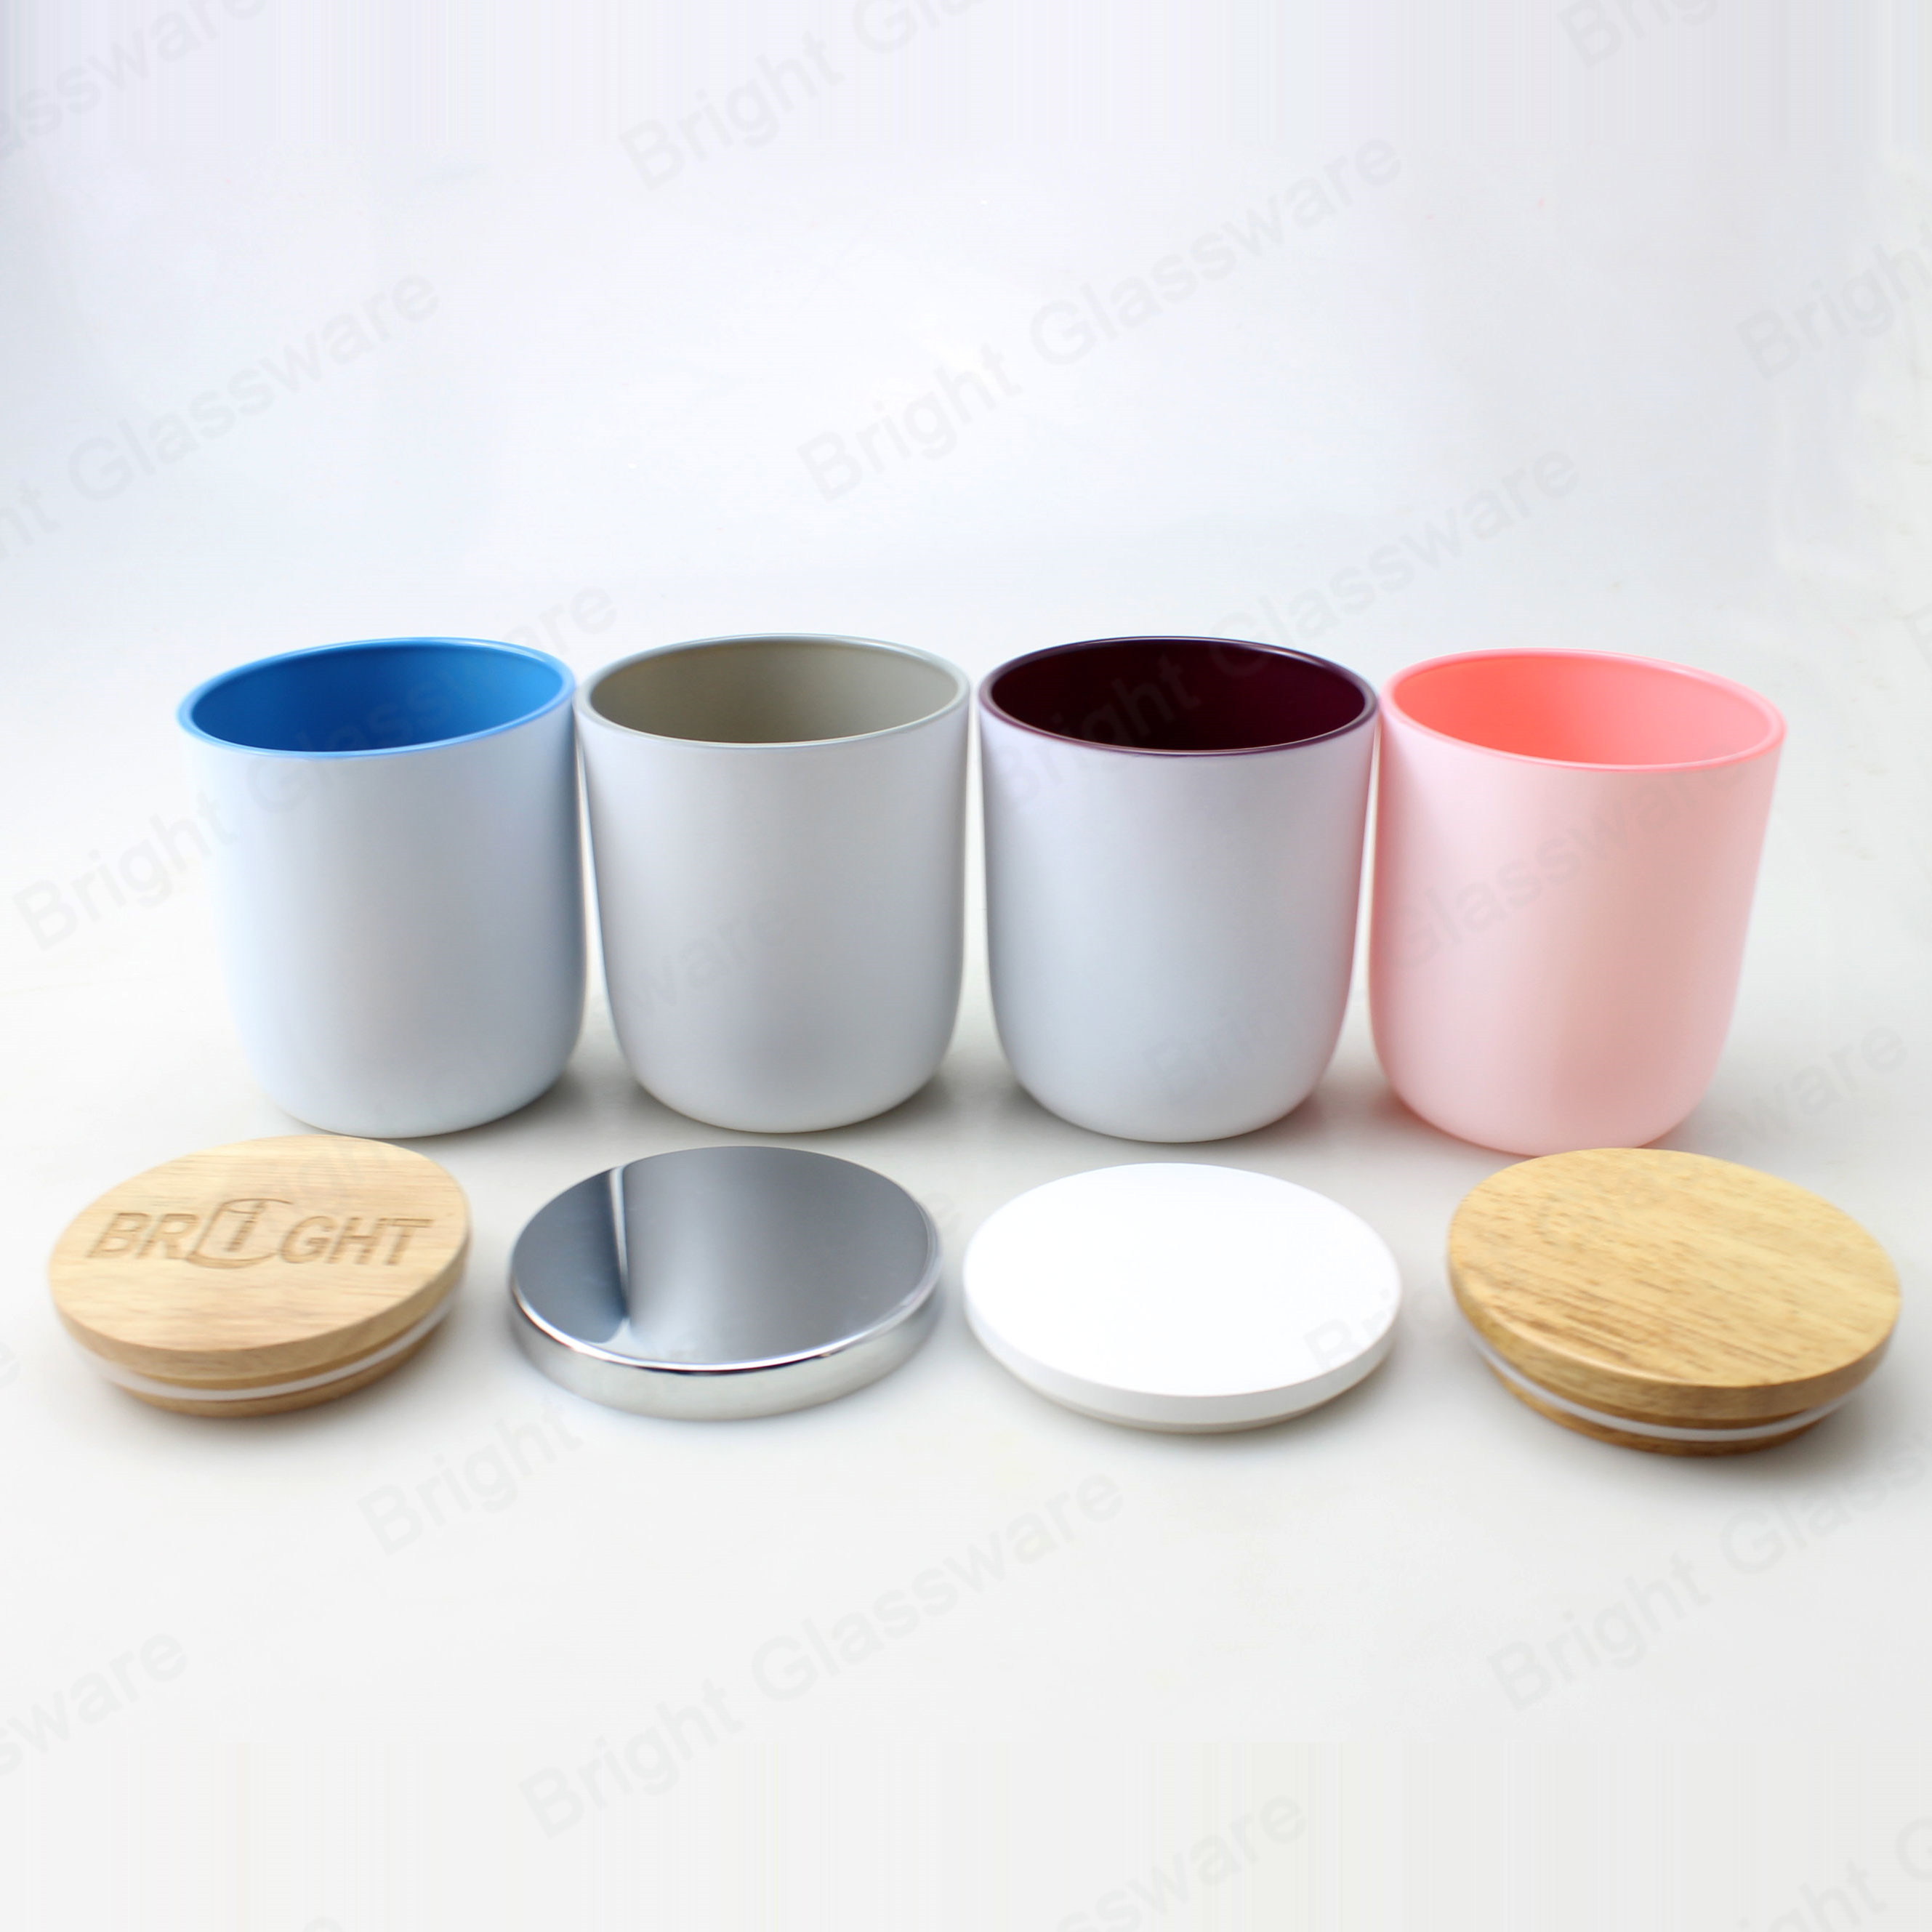 Wholesale Customize White Pink Blue Painting Glass Candle Holder With Wooden And Metal Lids China Candle Jar And Candle Holders Price Made In China Com